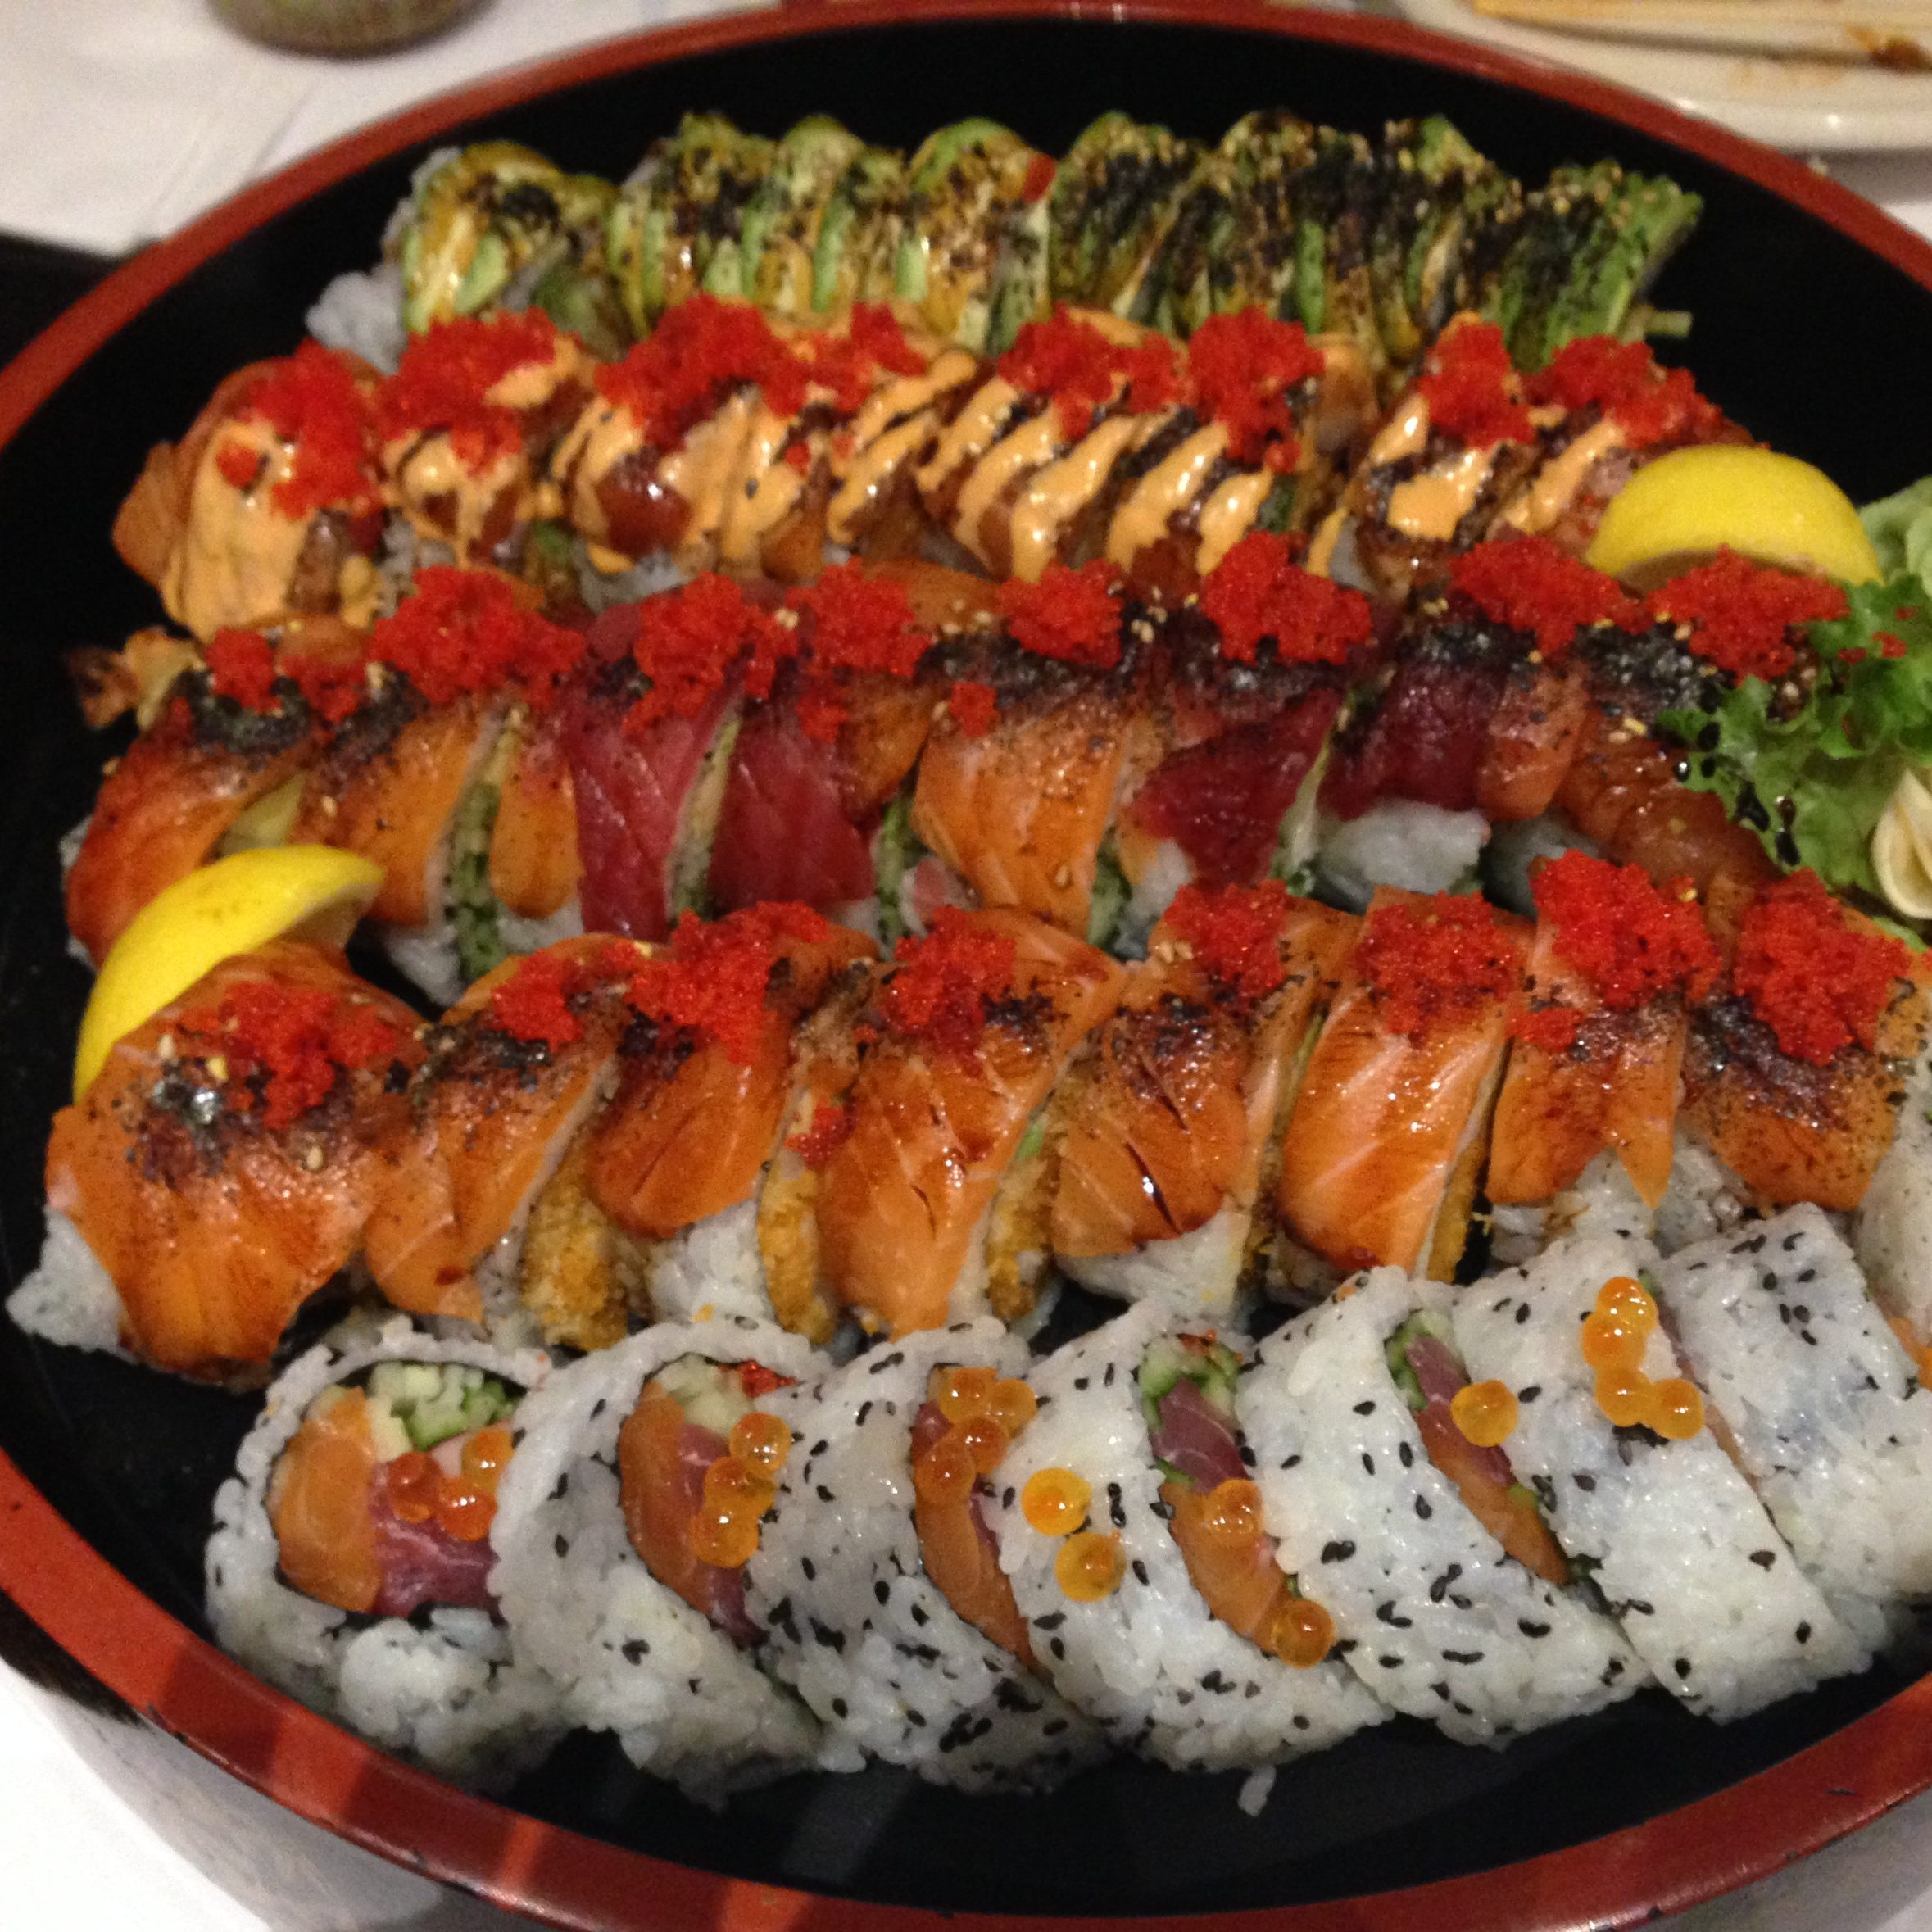 Aroowha Maki is always good to share with friends